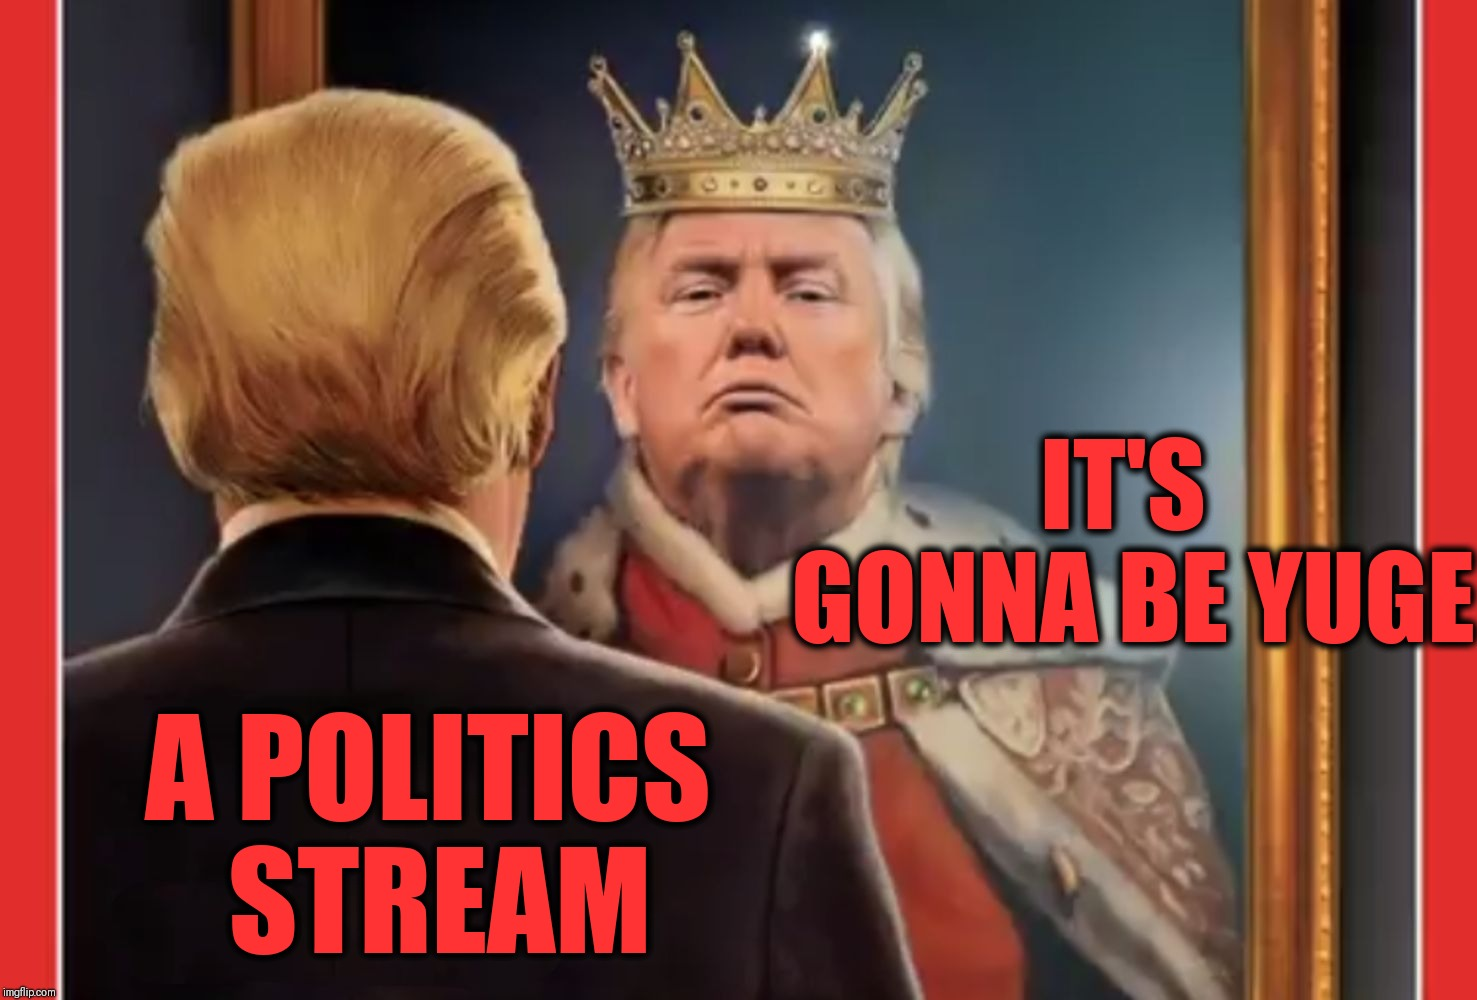 King Trump |  IT'S GONNA BE YUGE; A POLITICS STREAM | image tagged in king trump,meme stream,politics stream,trump huge | made w/ Imgflip meme maker